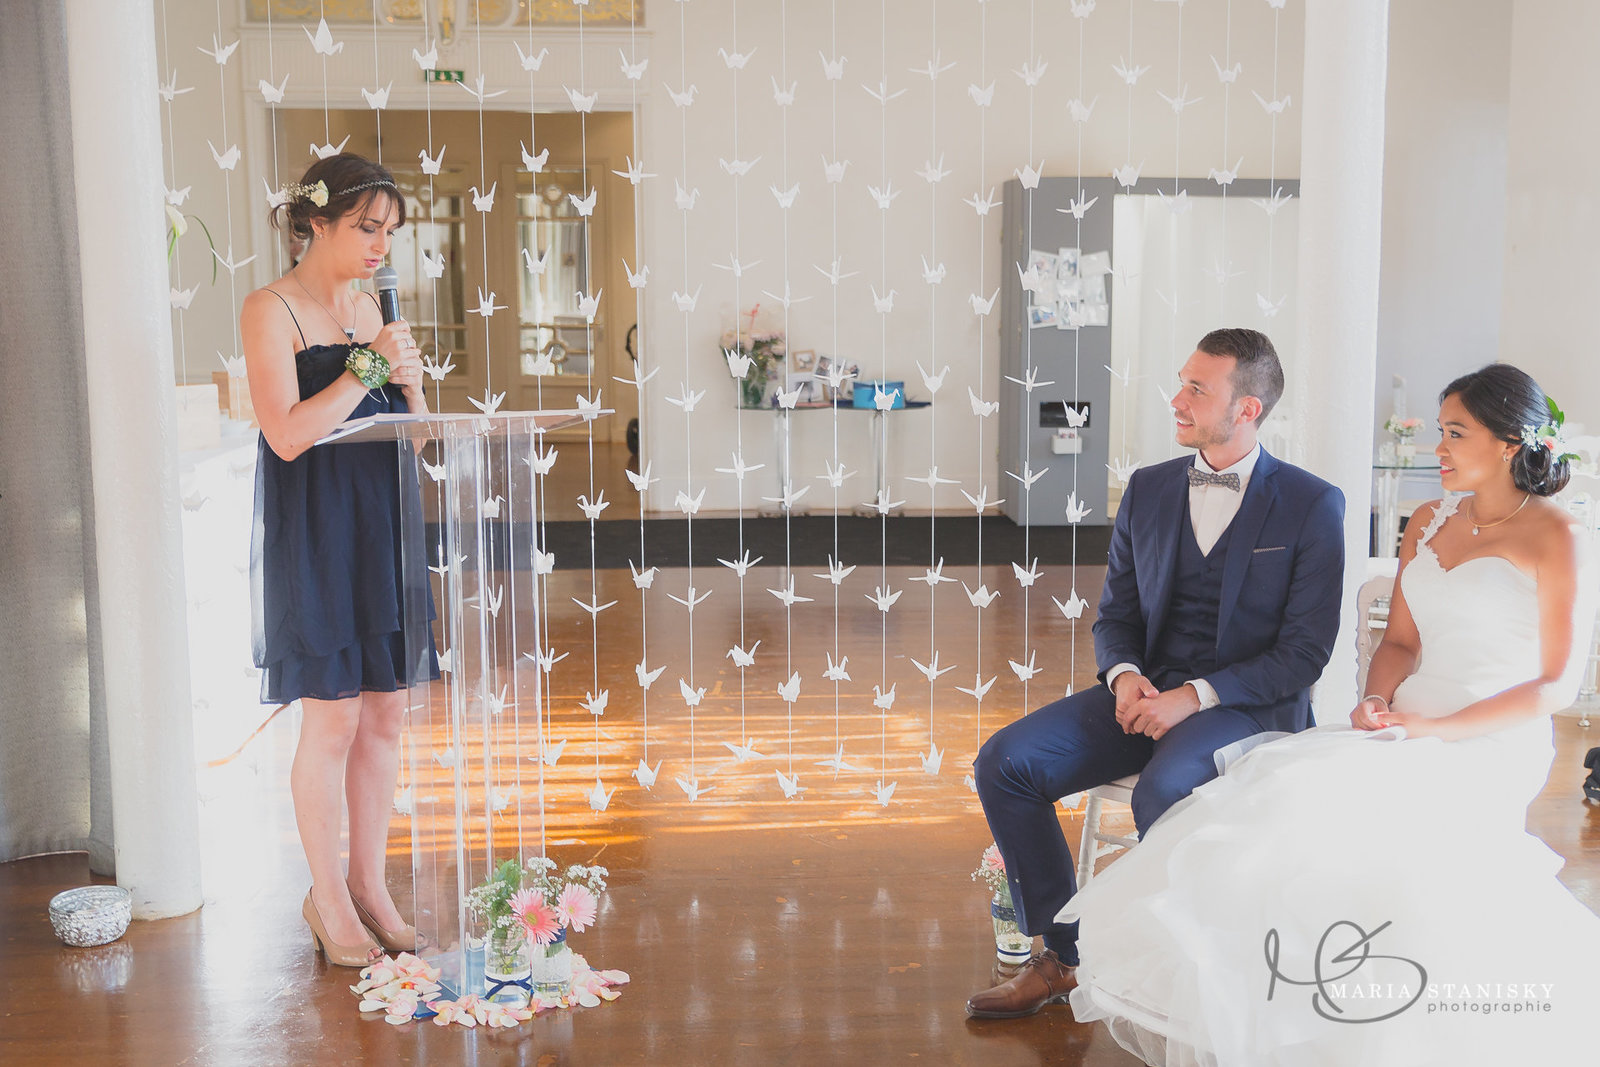 Mariage_Celine&Axel_11072015-0244